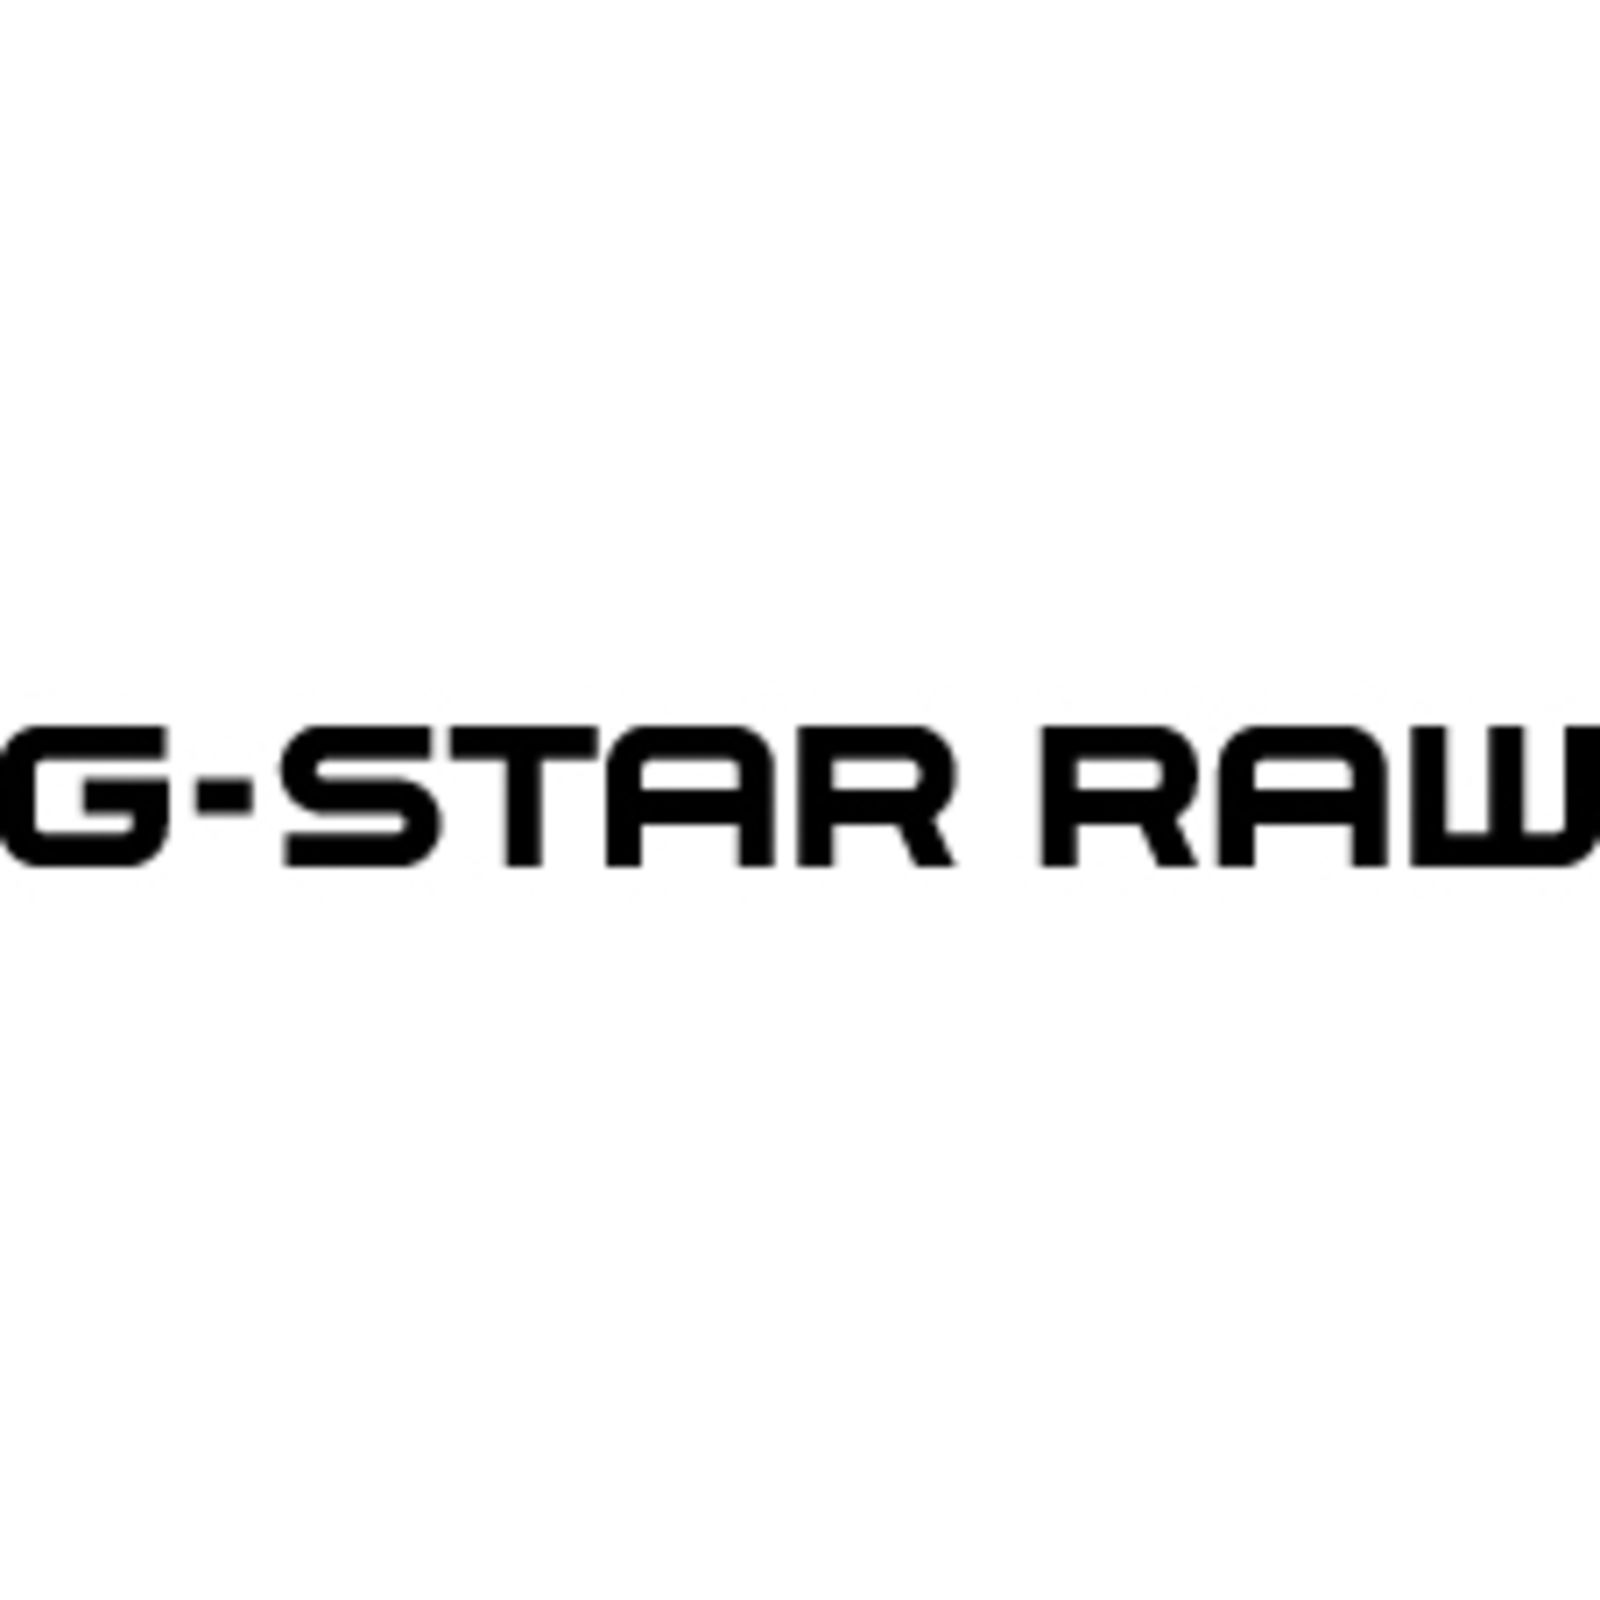 G-STAR RAW by Marc Newson (Image 1)